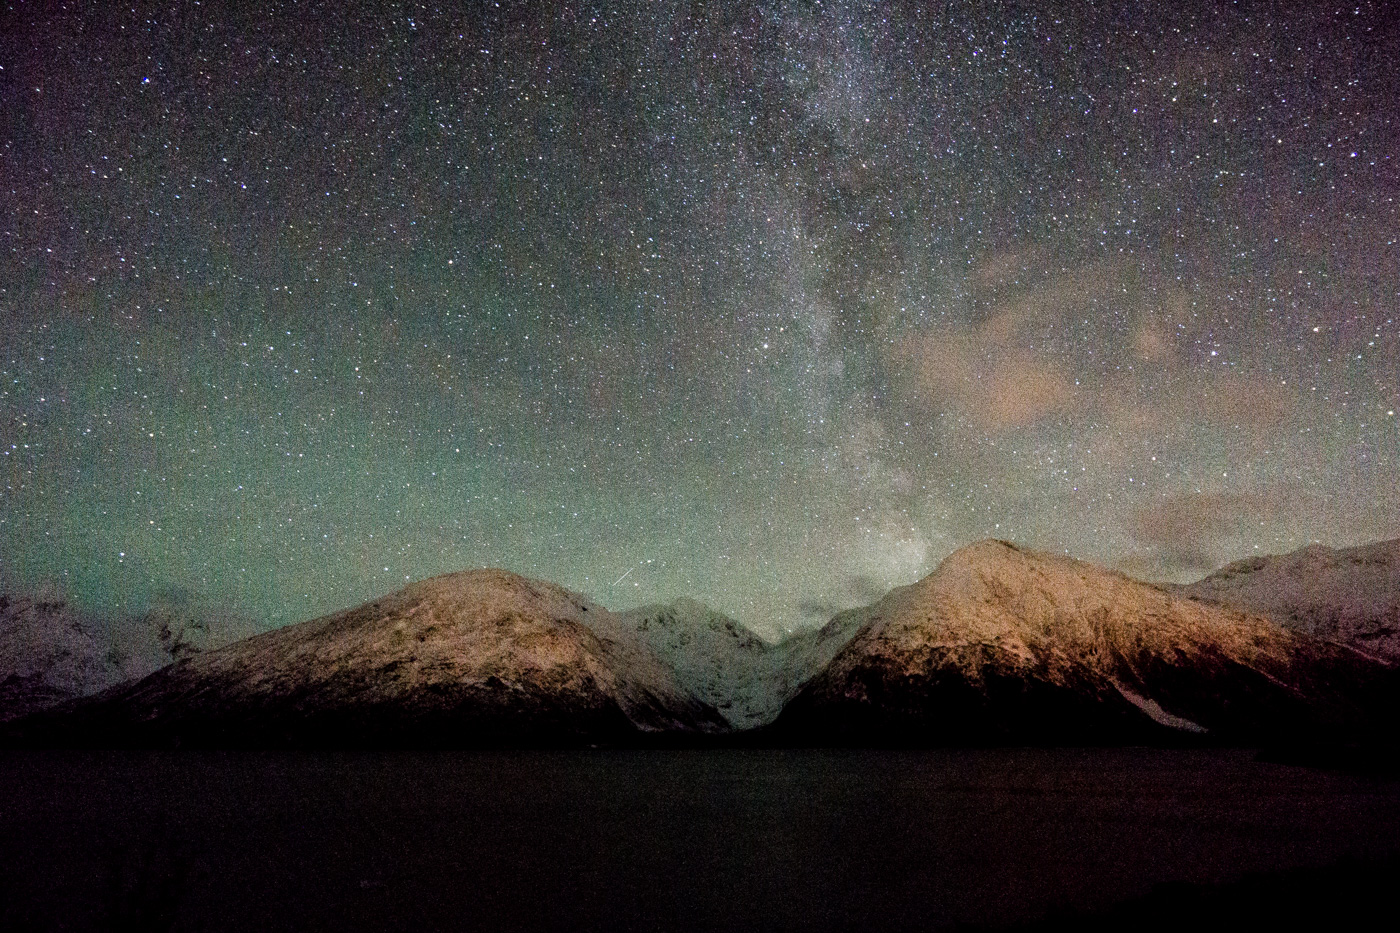 Sony a6000, Milky Way from Portage Alaska, 15s, f/4, ISO 6400